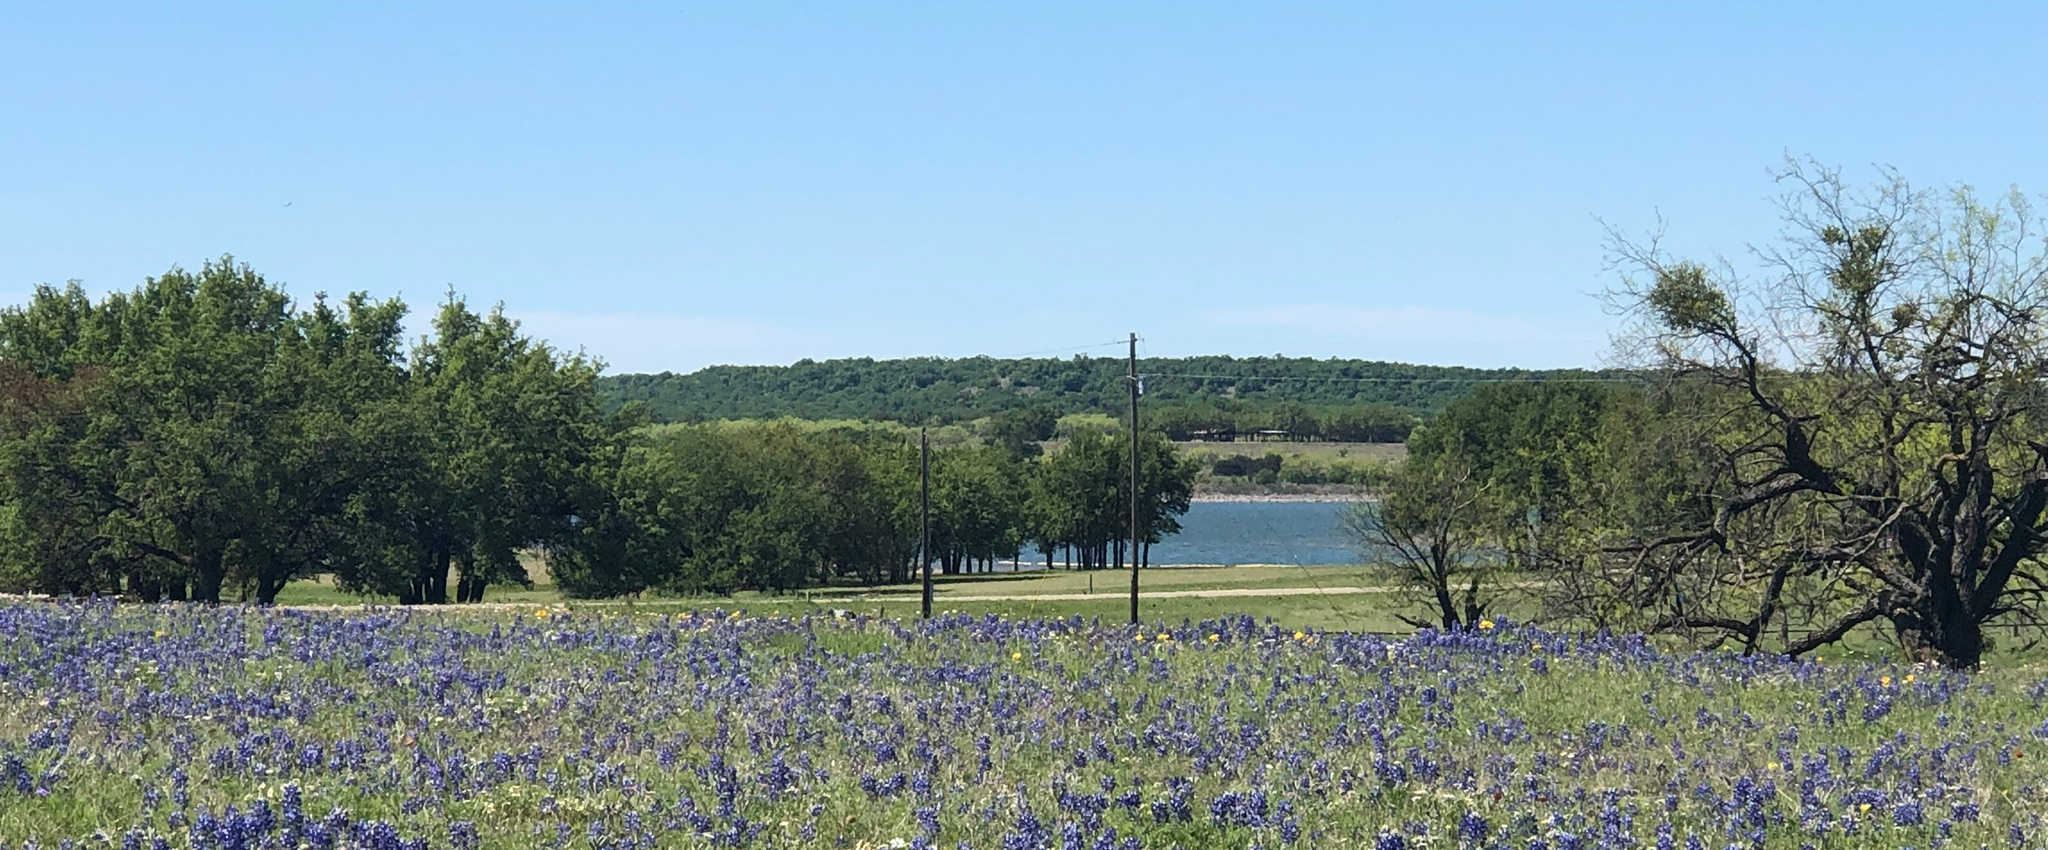 Bluebonnets at Hords Creek